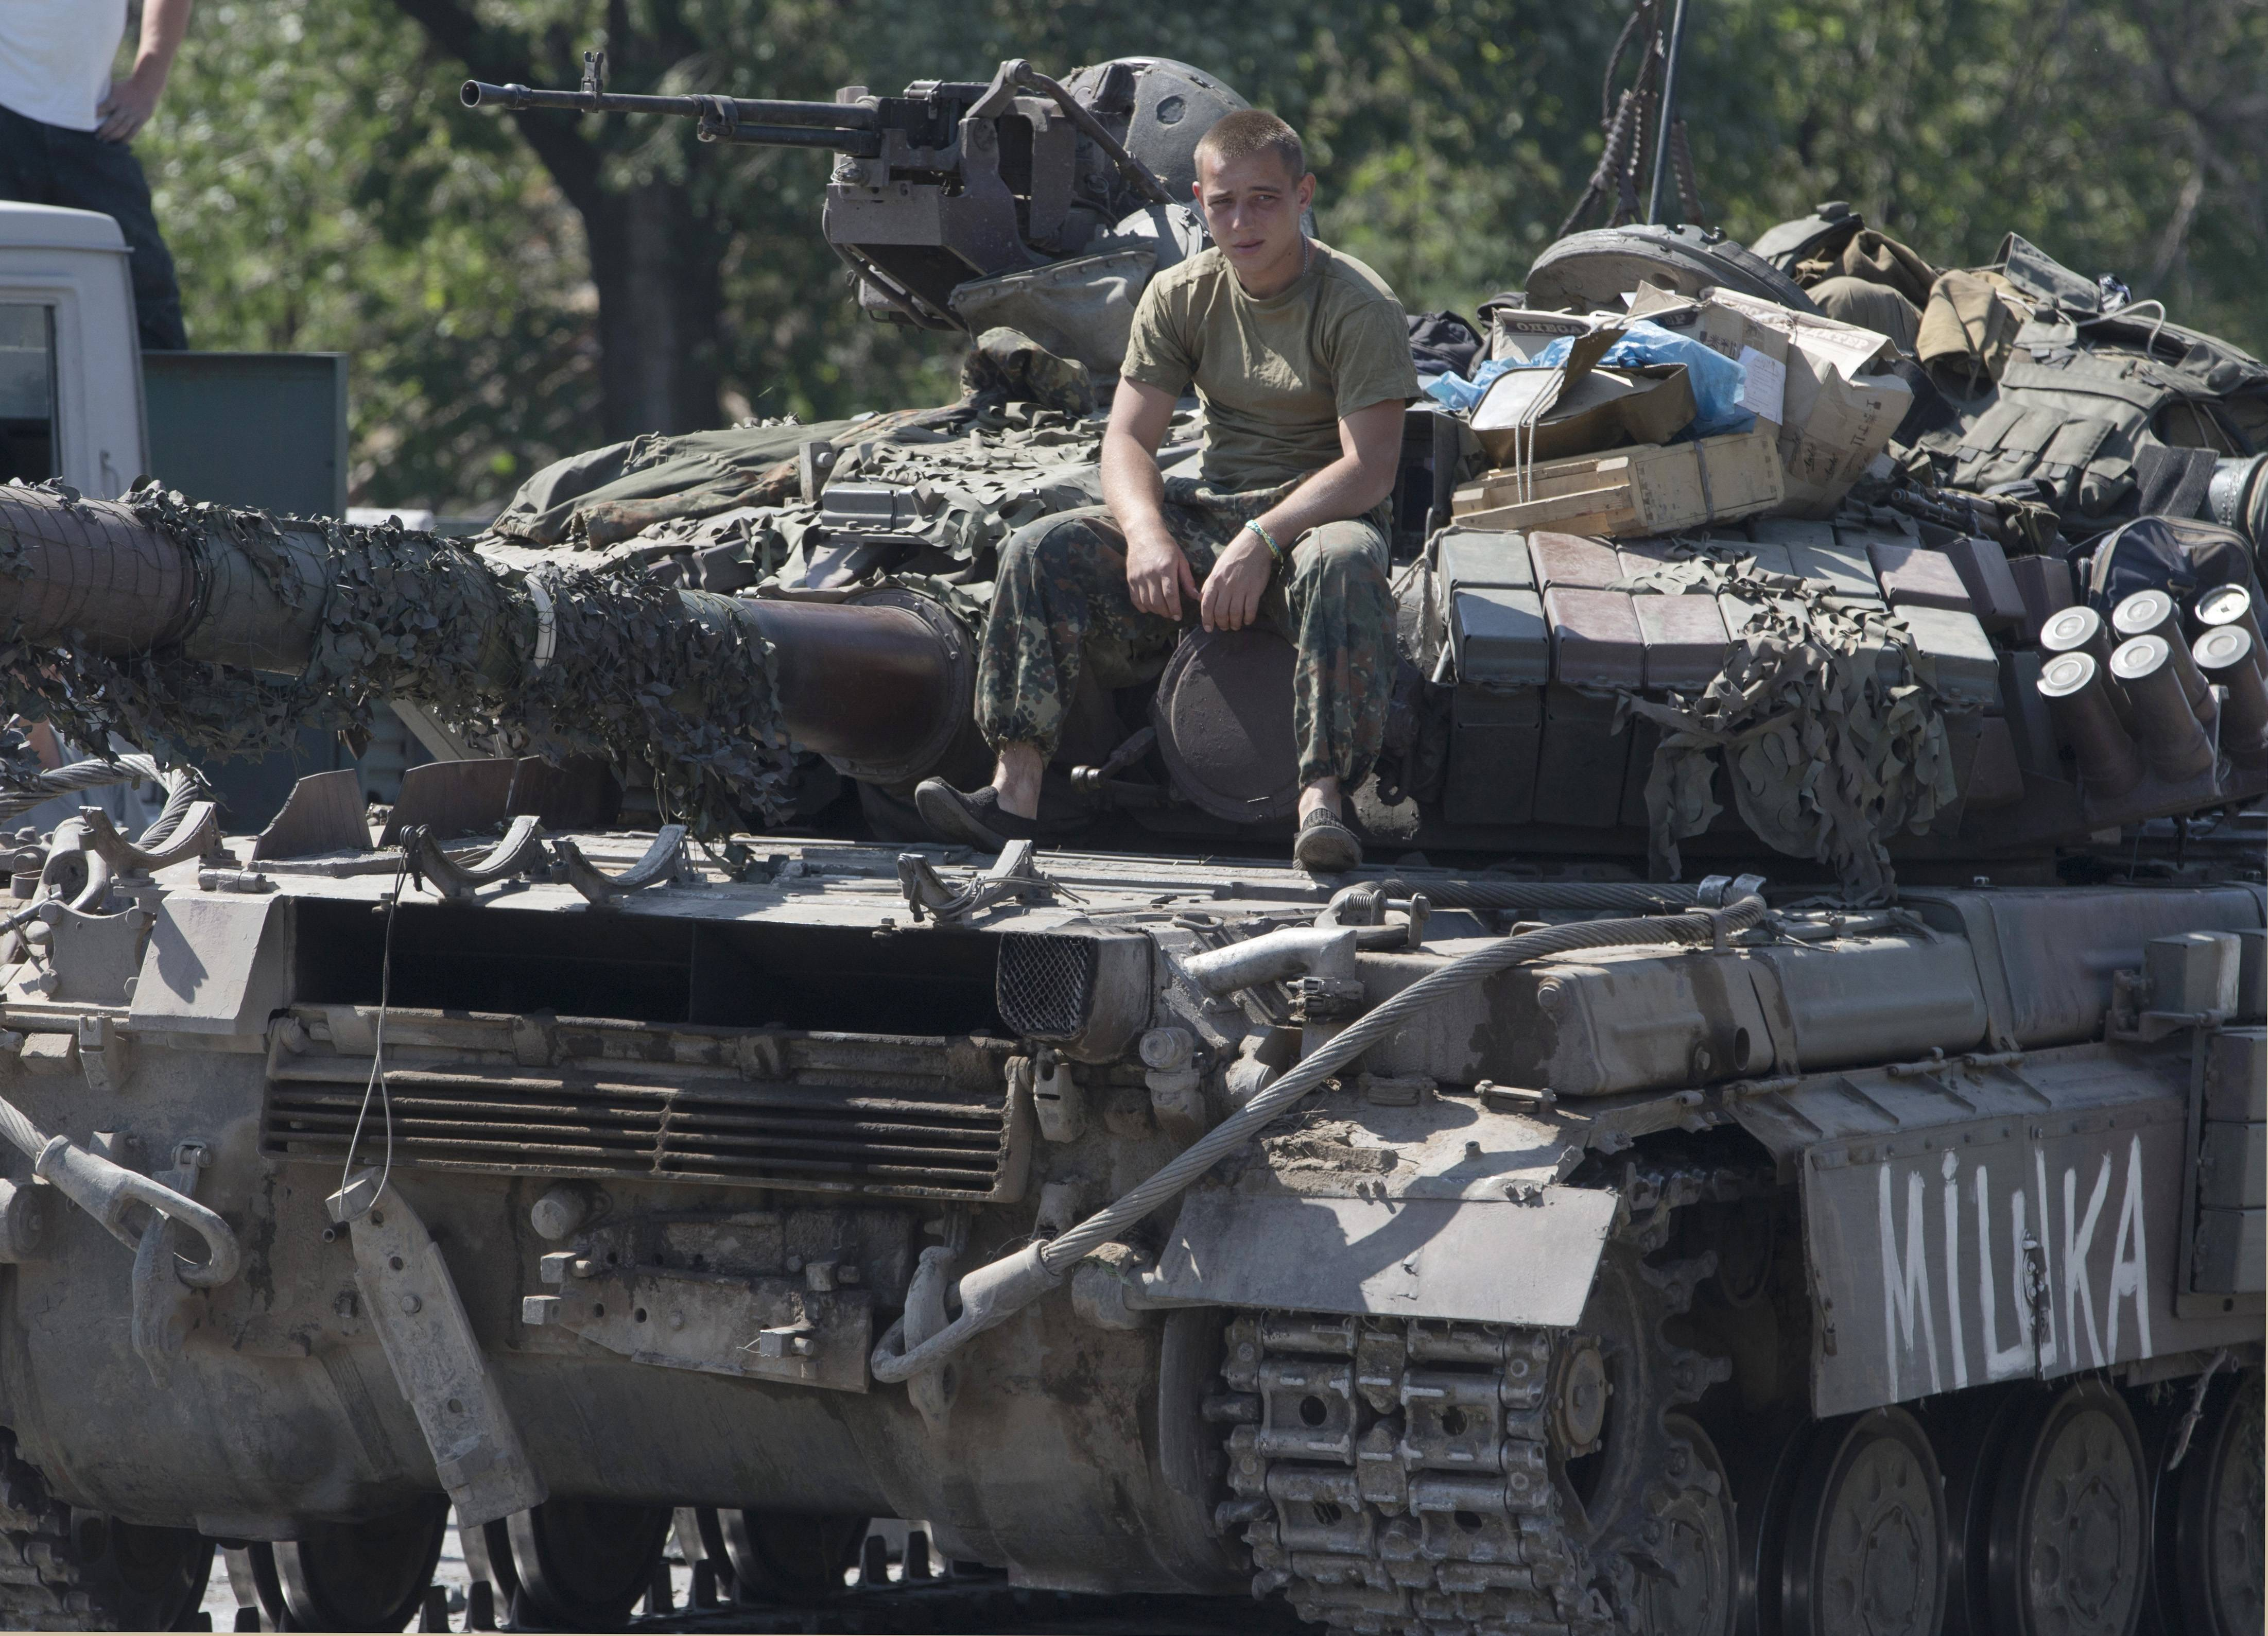 A Ukrainian government army soldier rests on his tank Friday at a block-post in the village of Debaltseve, eastern Ukraine. Fighting raged Sunday on the outskirts of Donetsk as the Ukranian Army tried to seize control of the rebel stronghold.